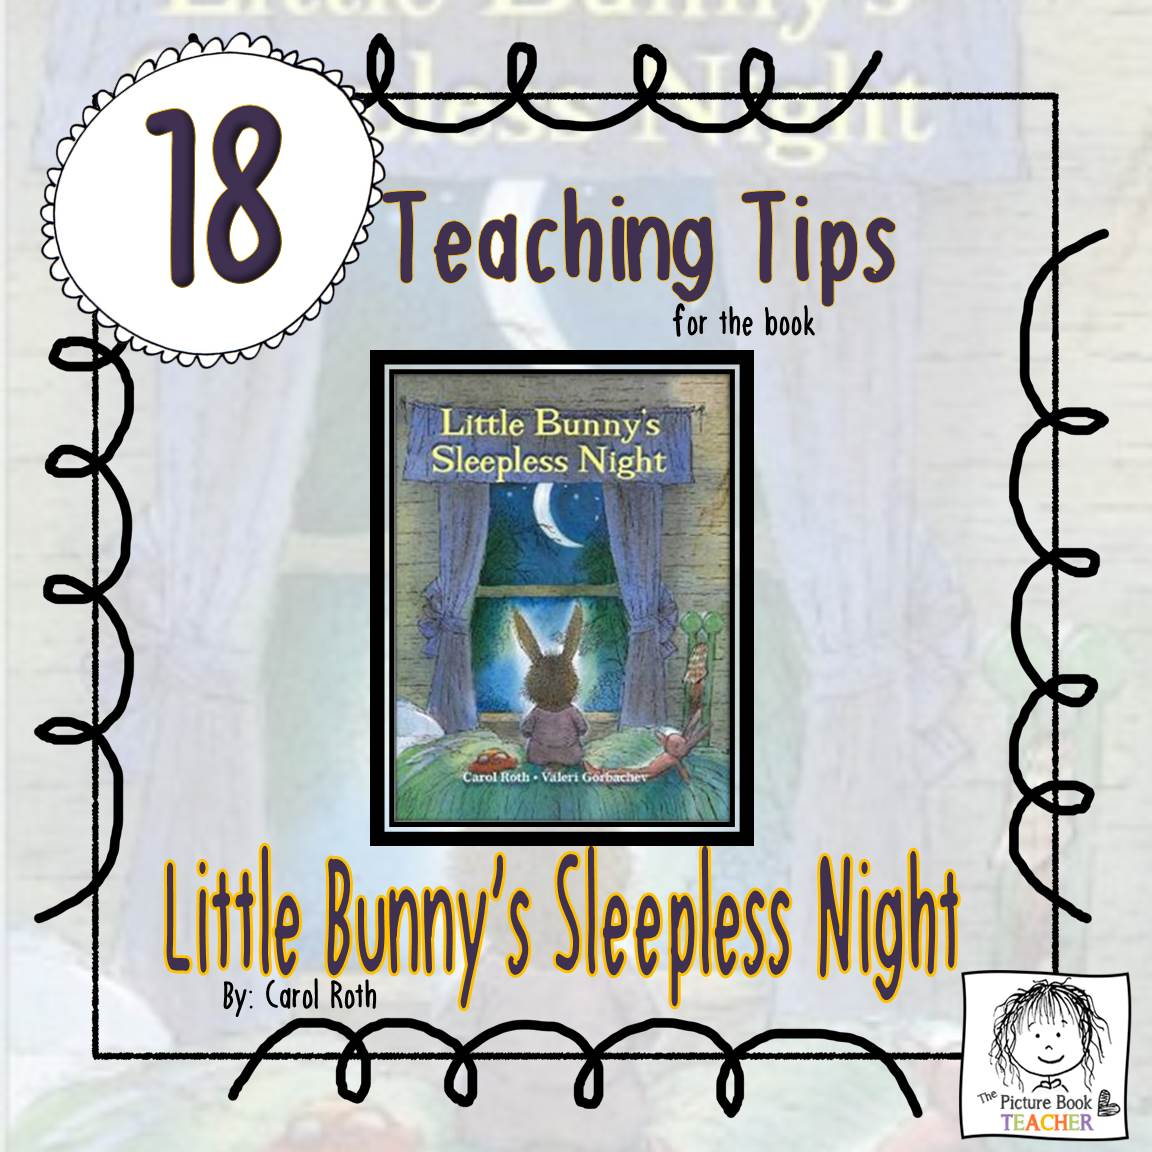 The Picture Book Teacher's 18 teaching tips for The Little Bunny's Sleepless Night by Carol Roth.